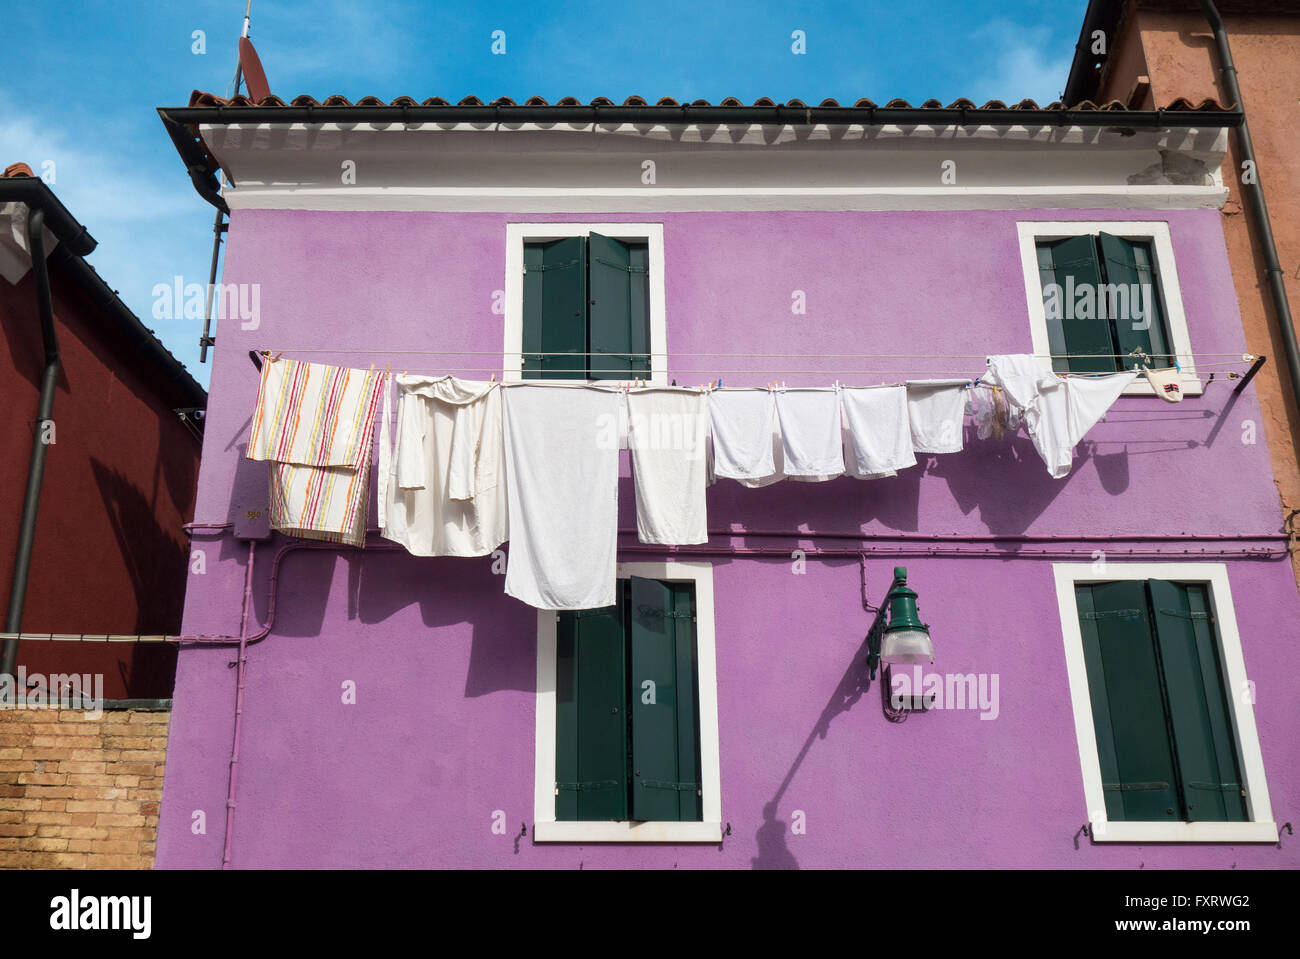 Venice - Island of Burano colorful colourful house with clothesline clothes line along the Canal. - Stock Image